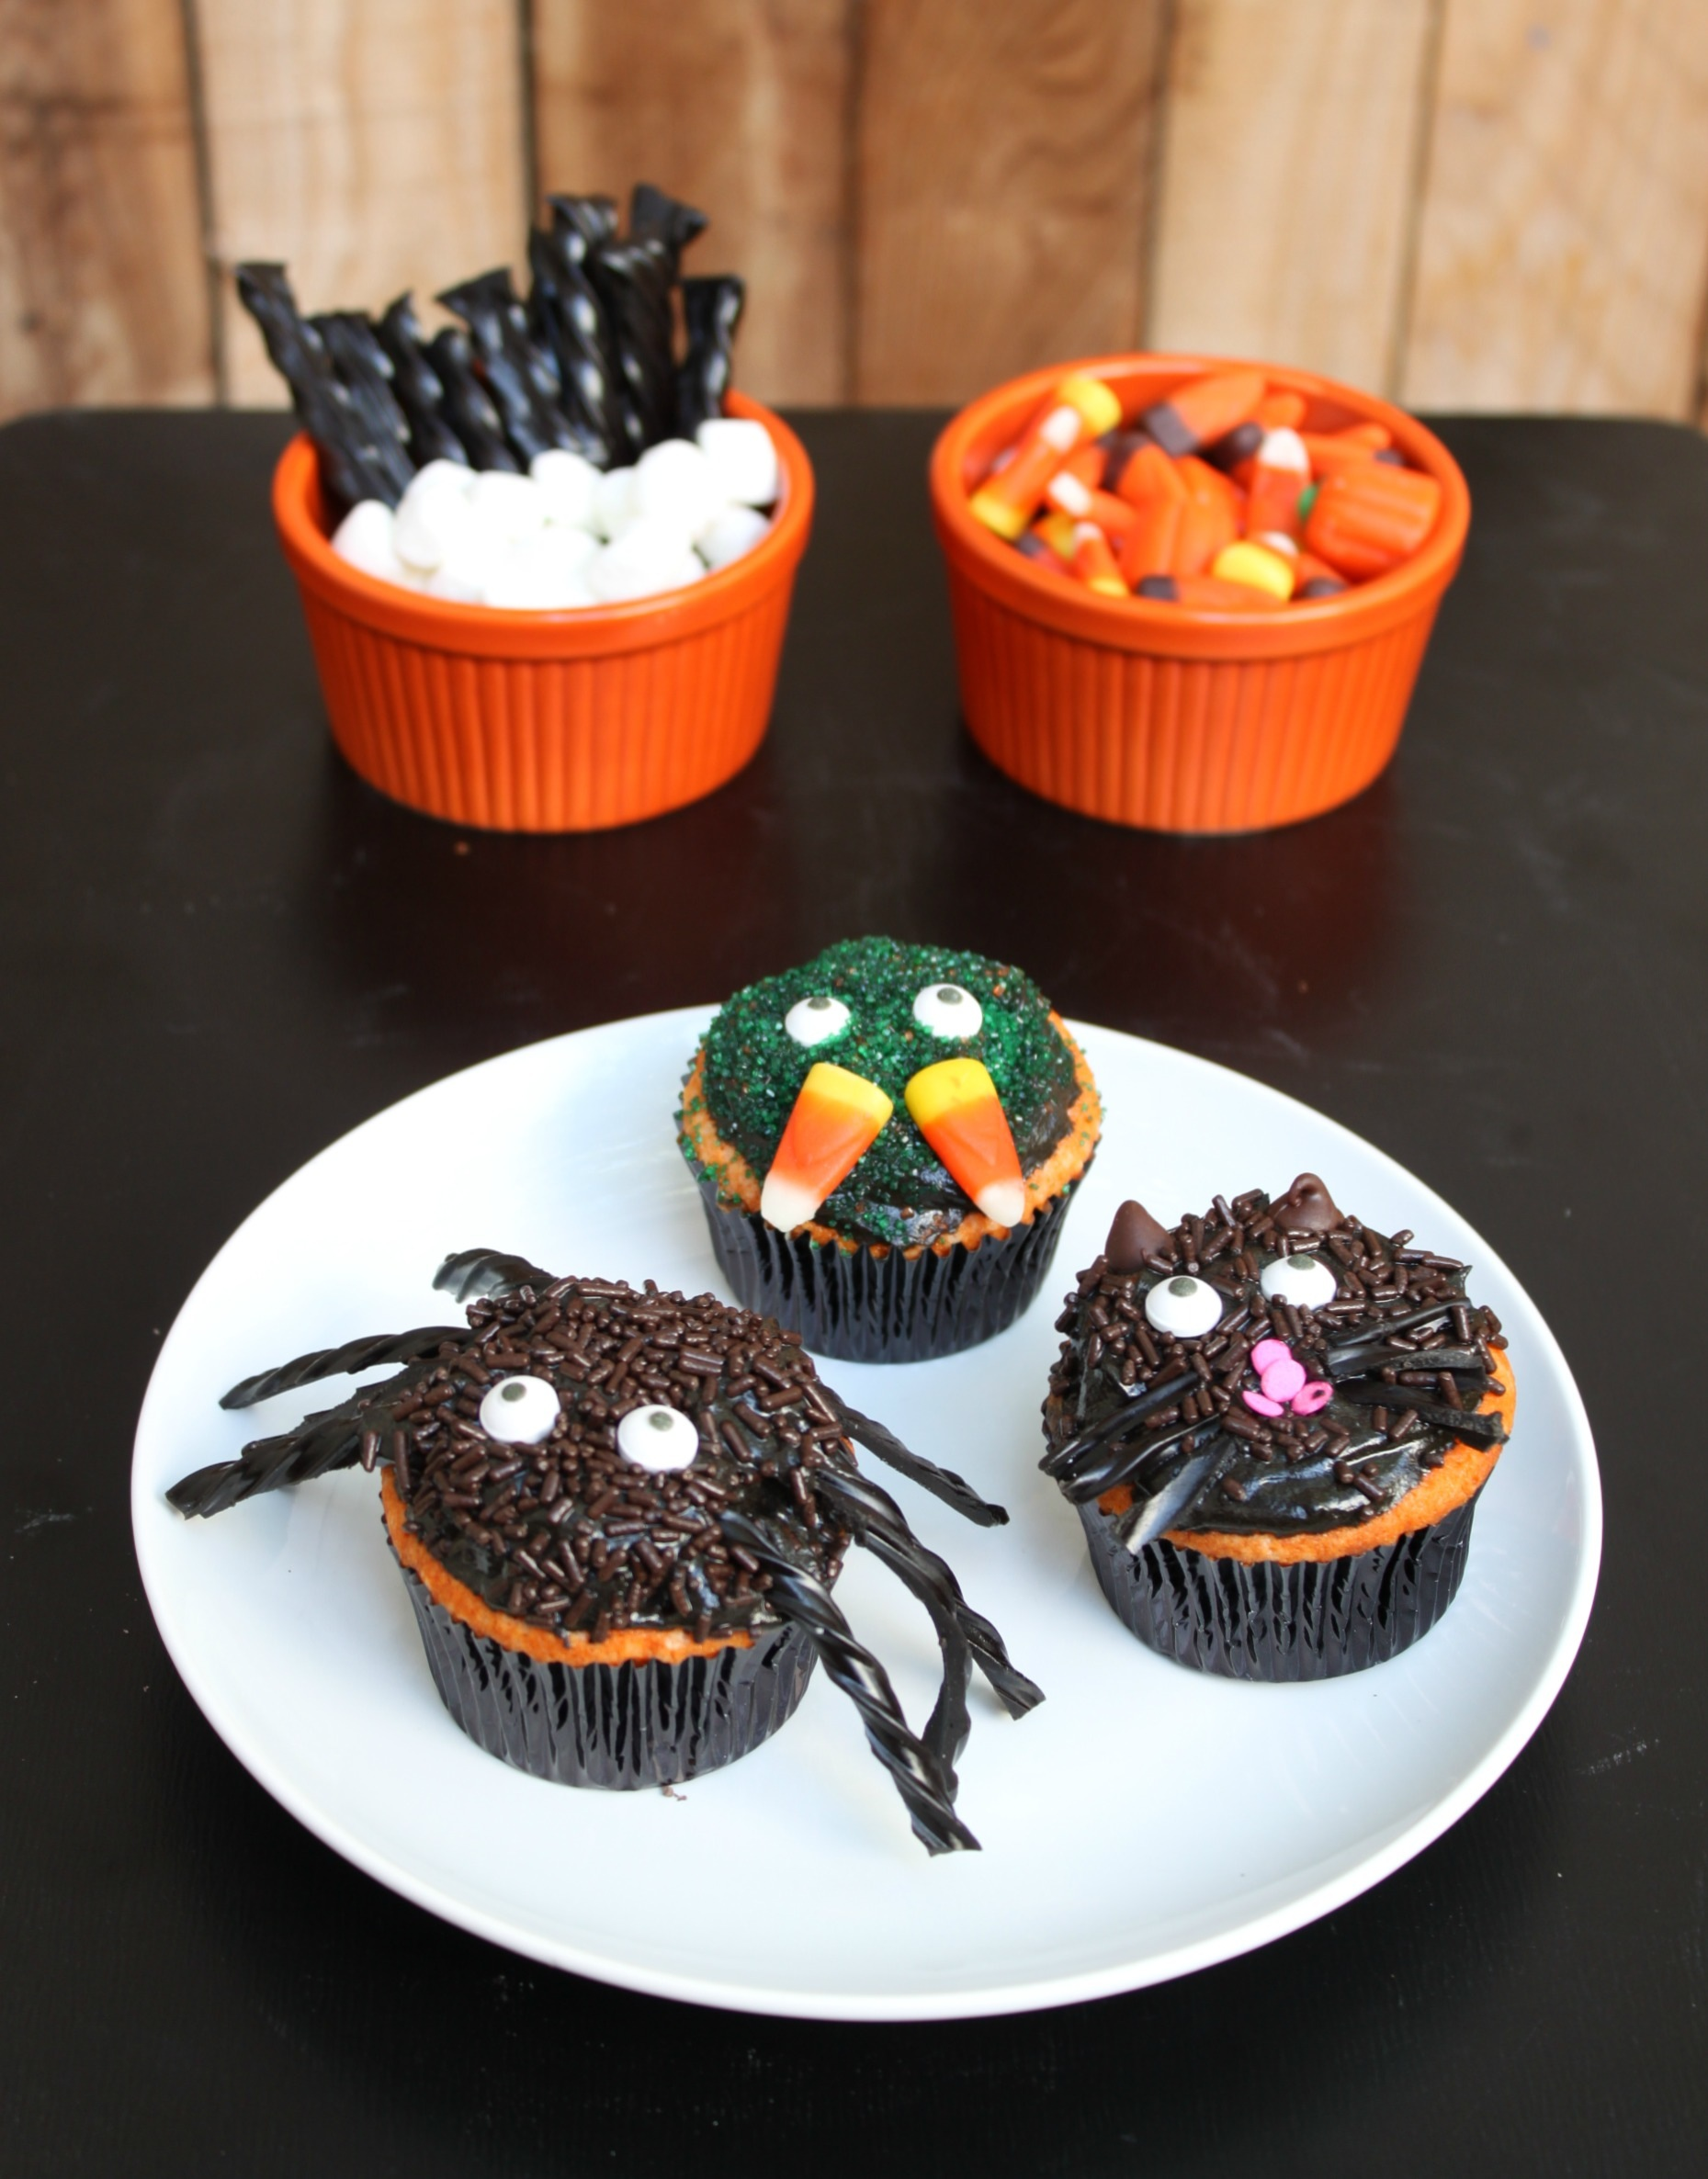 Halloween Cupcake Cake Decorating Ideas : Creepy Halloween Cupcakes 52 Kitchen Adventures